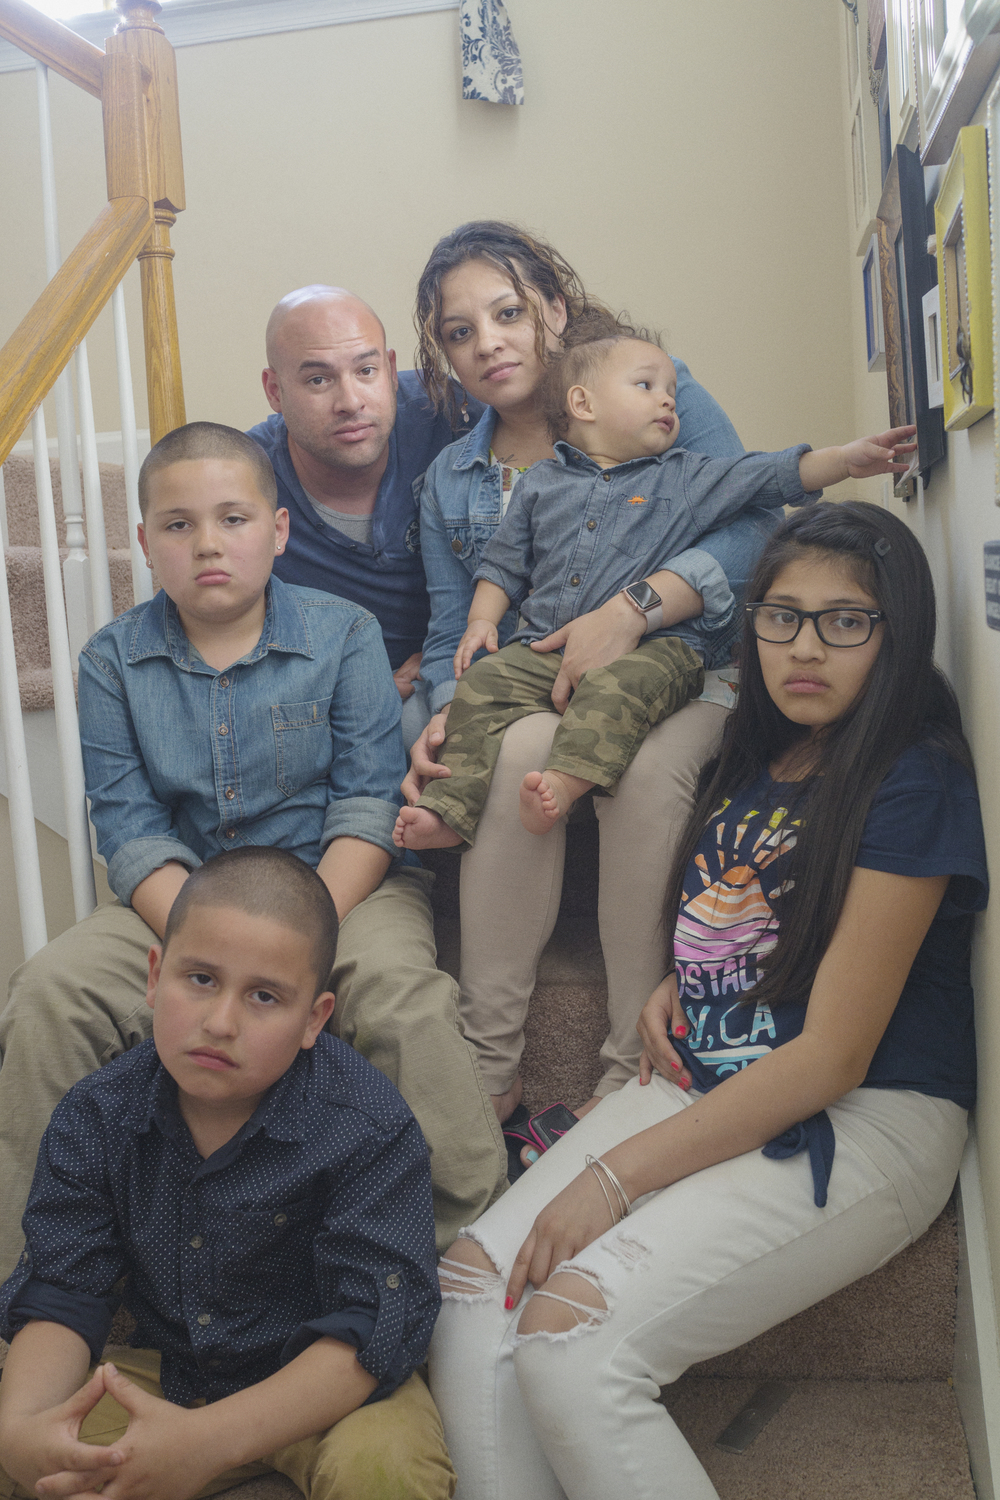 "A family portrait of the Ortiz Rivera family in Williamsburg, Virginia on April 16, 2016, nearly six years after the death of Javier Ortiz Rivera, who was killed in action in Afghanistan in 2010. Bottom Left, Anthony Ortiz Rivera, 8, above Andrew Ortiz Rivera, 11, Juan ""Junior"" Vasquez Jr., Veronica Ortiz Rivera, Kaleb Vasquez, 16 months and Alyssa Ortiz Rivera."